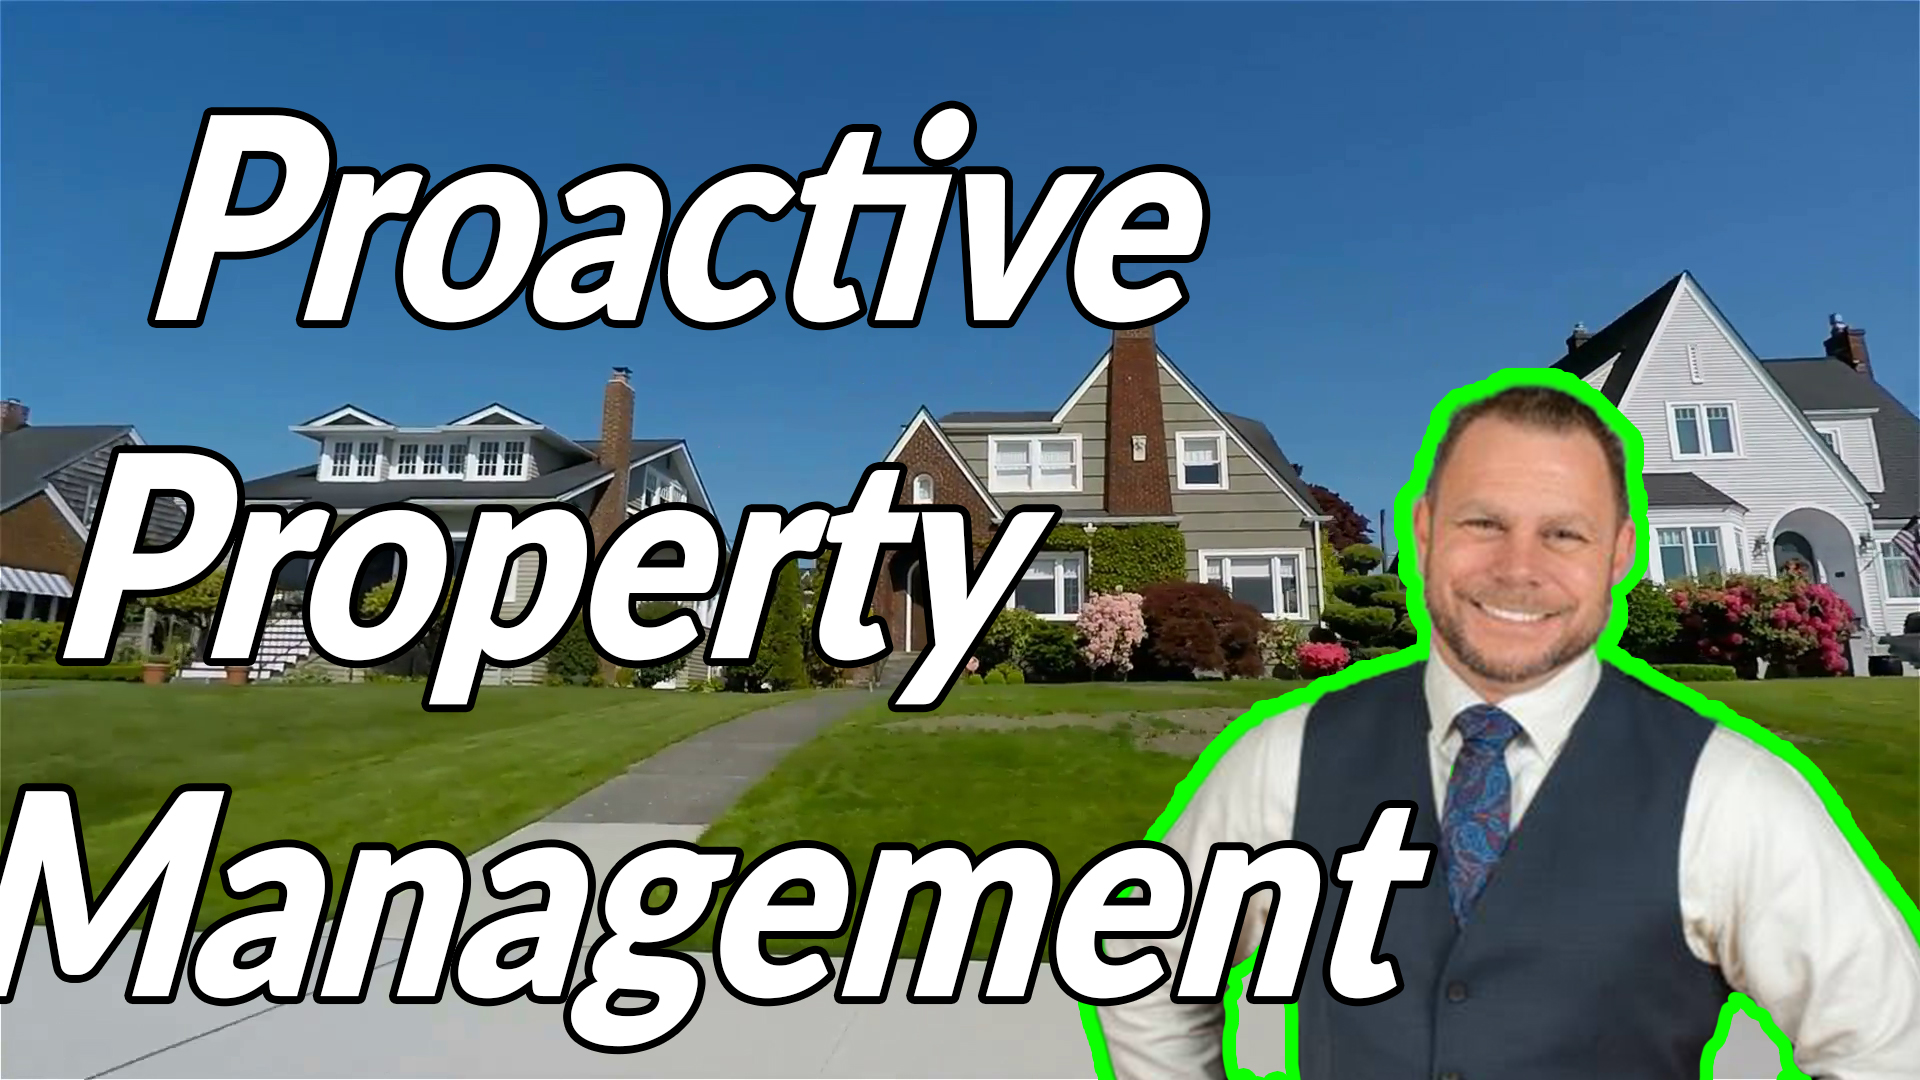 Proactive Property Management With Al Sartorelli